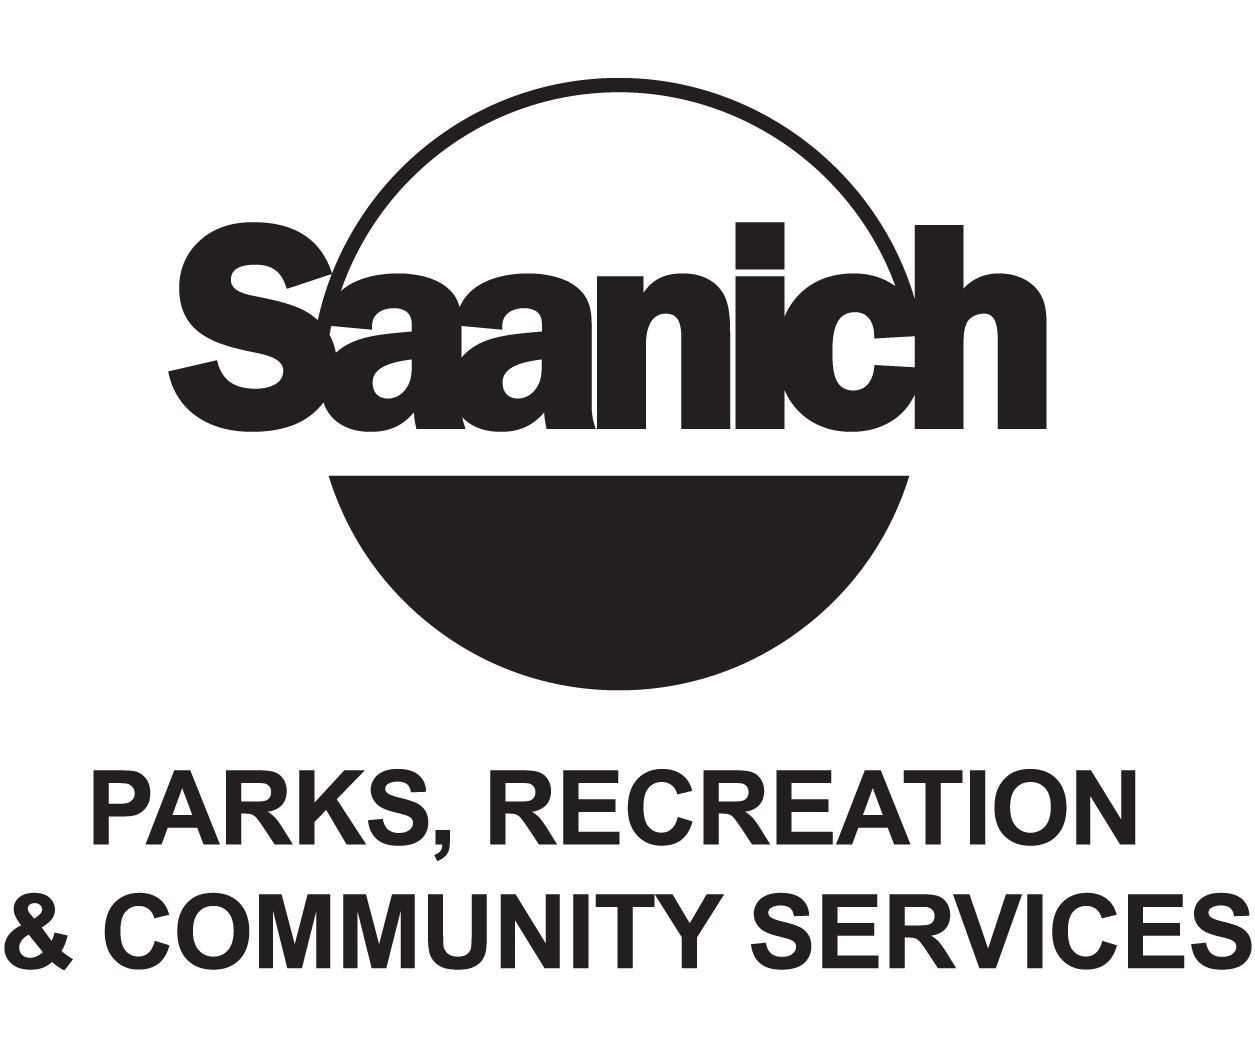 Logo for Saanich Parks, Recreation and Community Services with a black circle